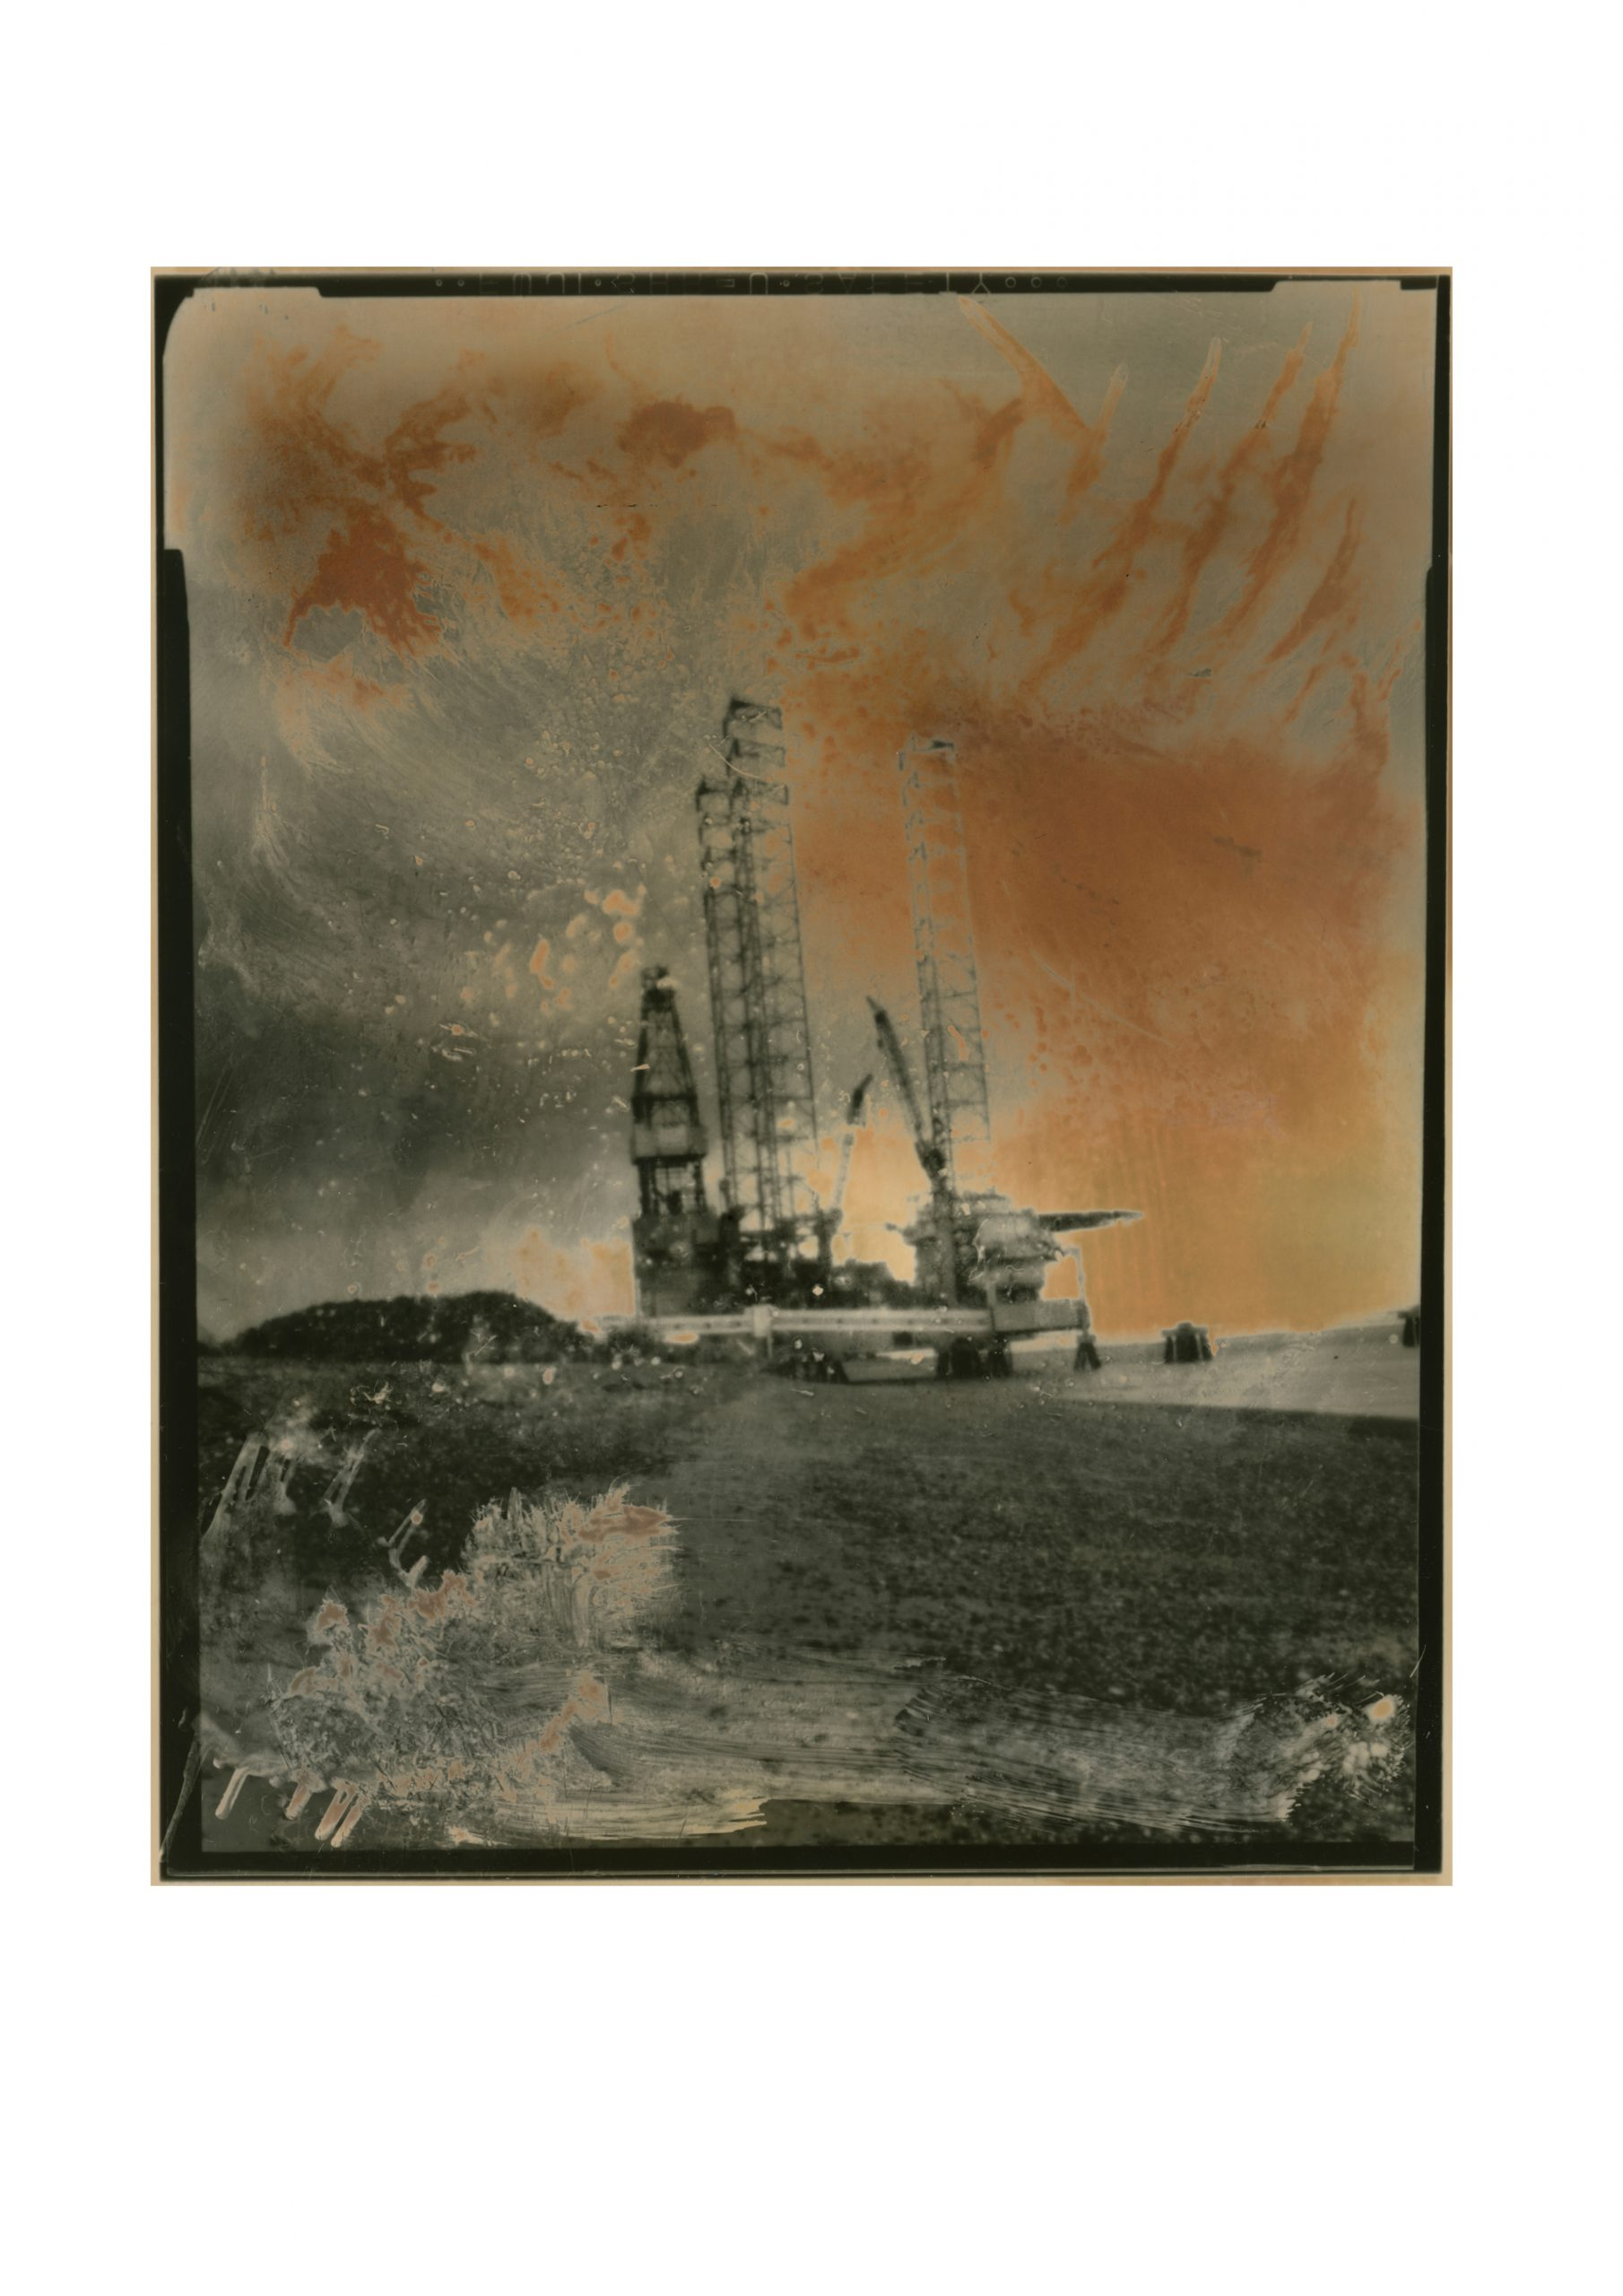 quite abstract image of what appears to be an old sailing ship but is an oil rig under construction foreground greys and washed in sky is a rusted looking orange